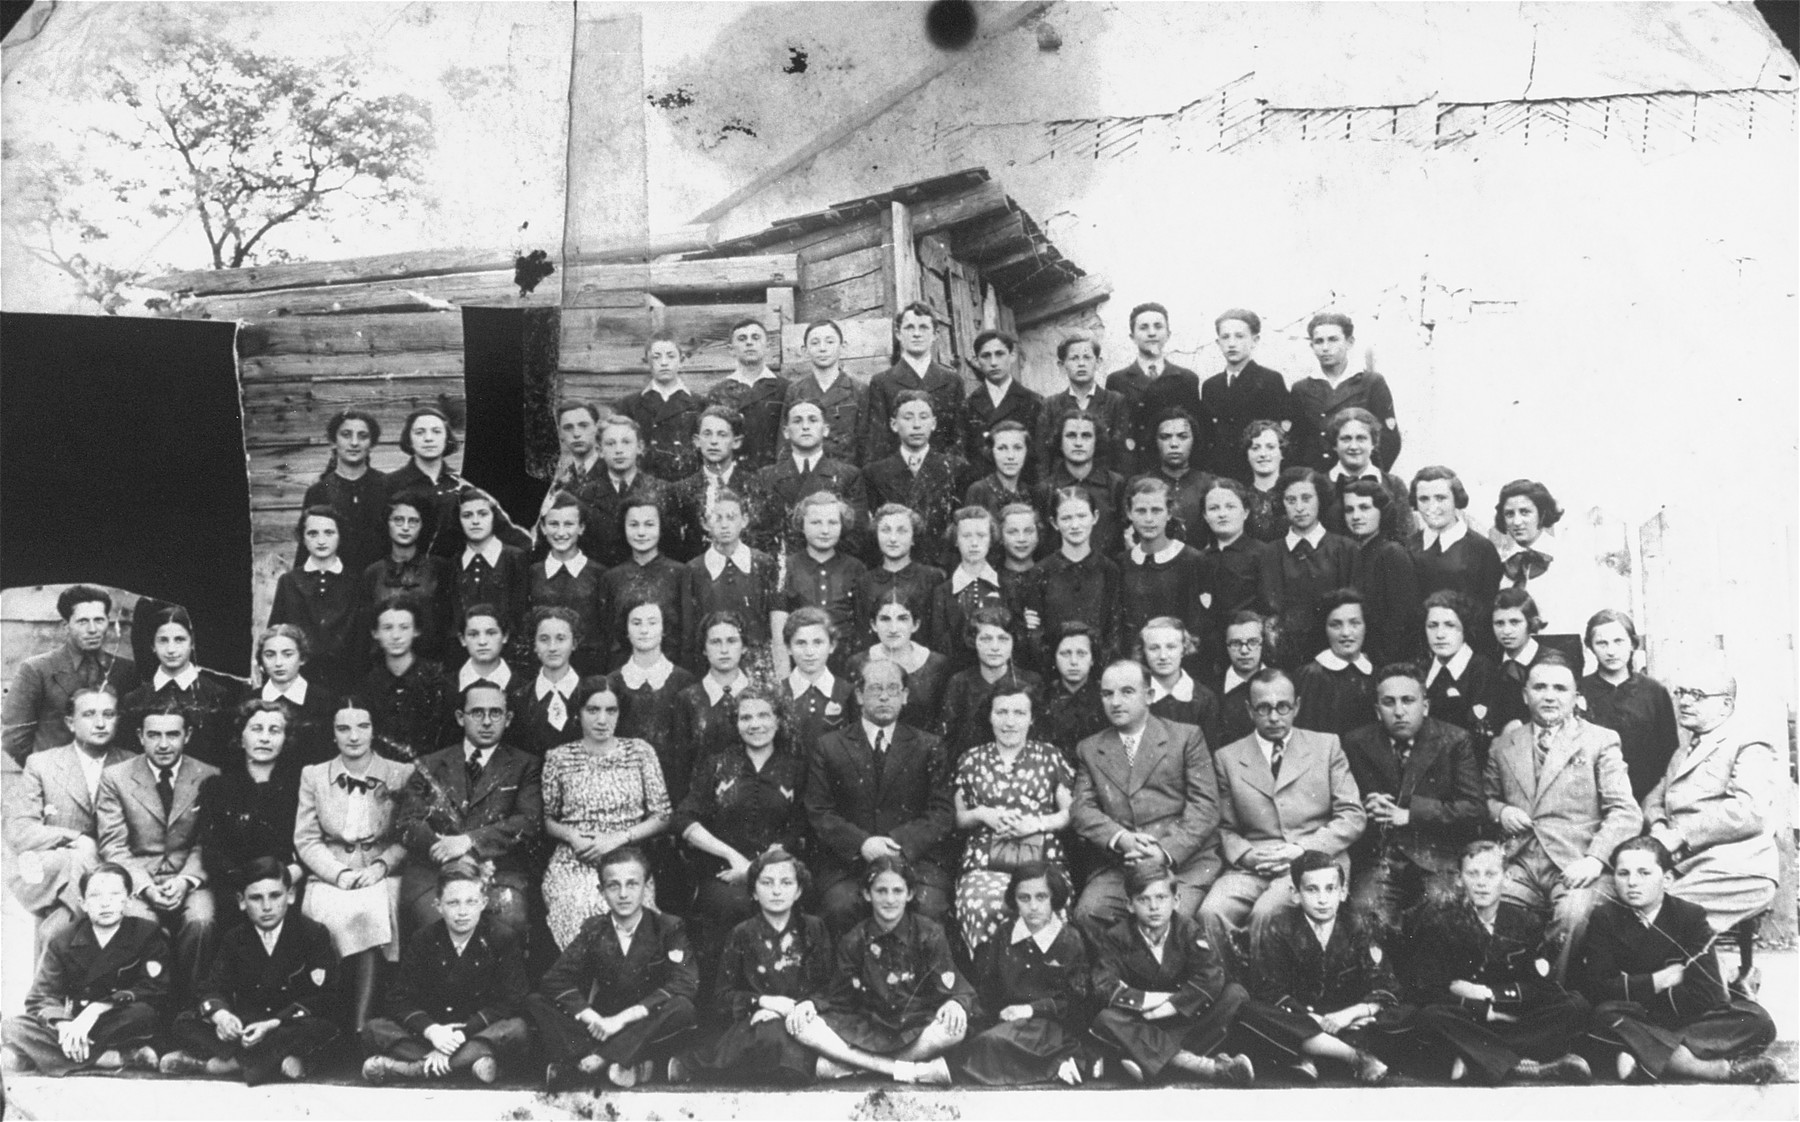 Group portrait of the faculty and students of the Hebrew gymnasium in Czortkow.  Bronia Wasserman is on the far left of the fifth row.  Her sister Zosia Wasserman is in the third row, 11th from the left.